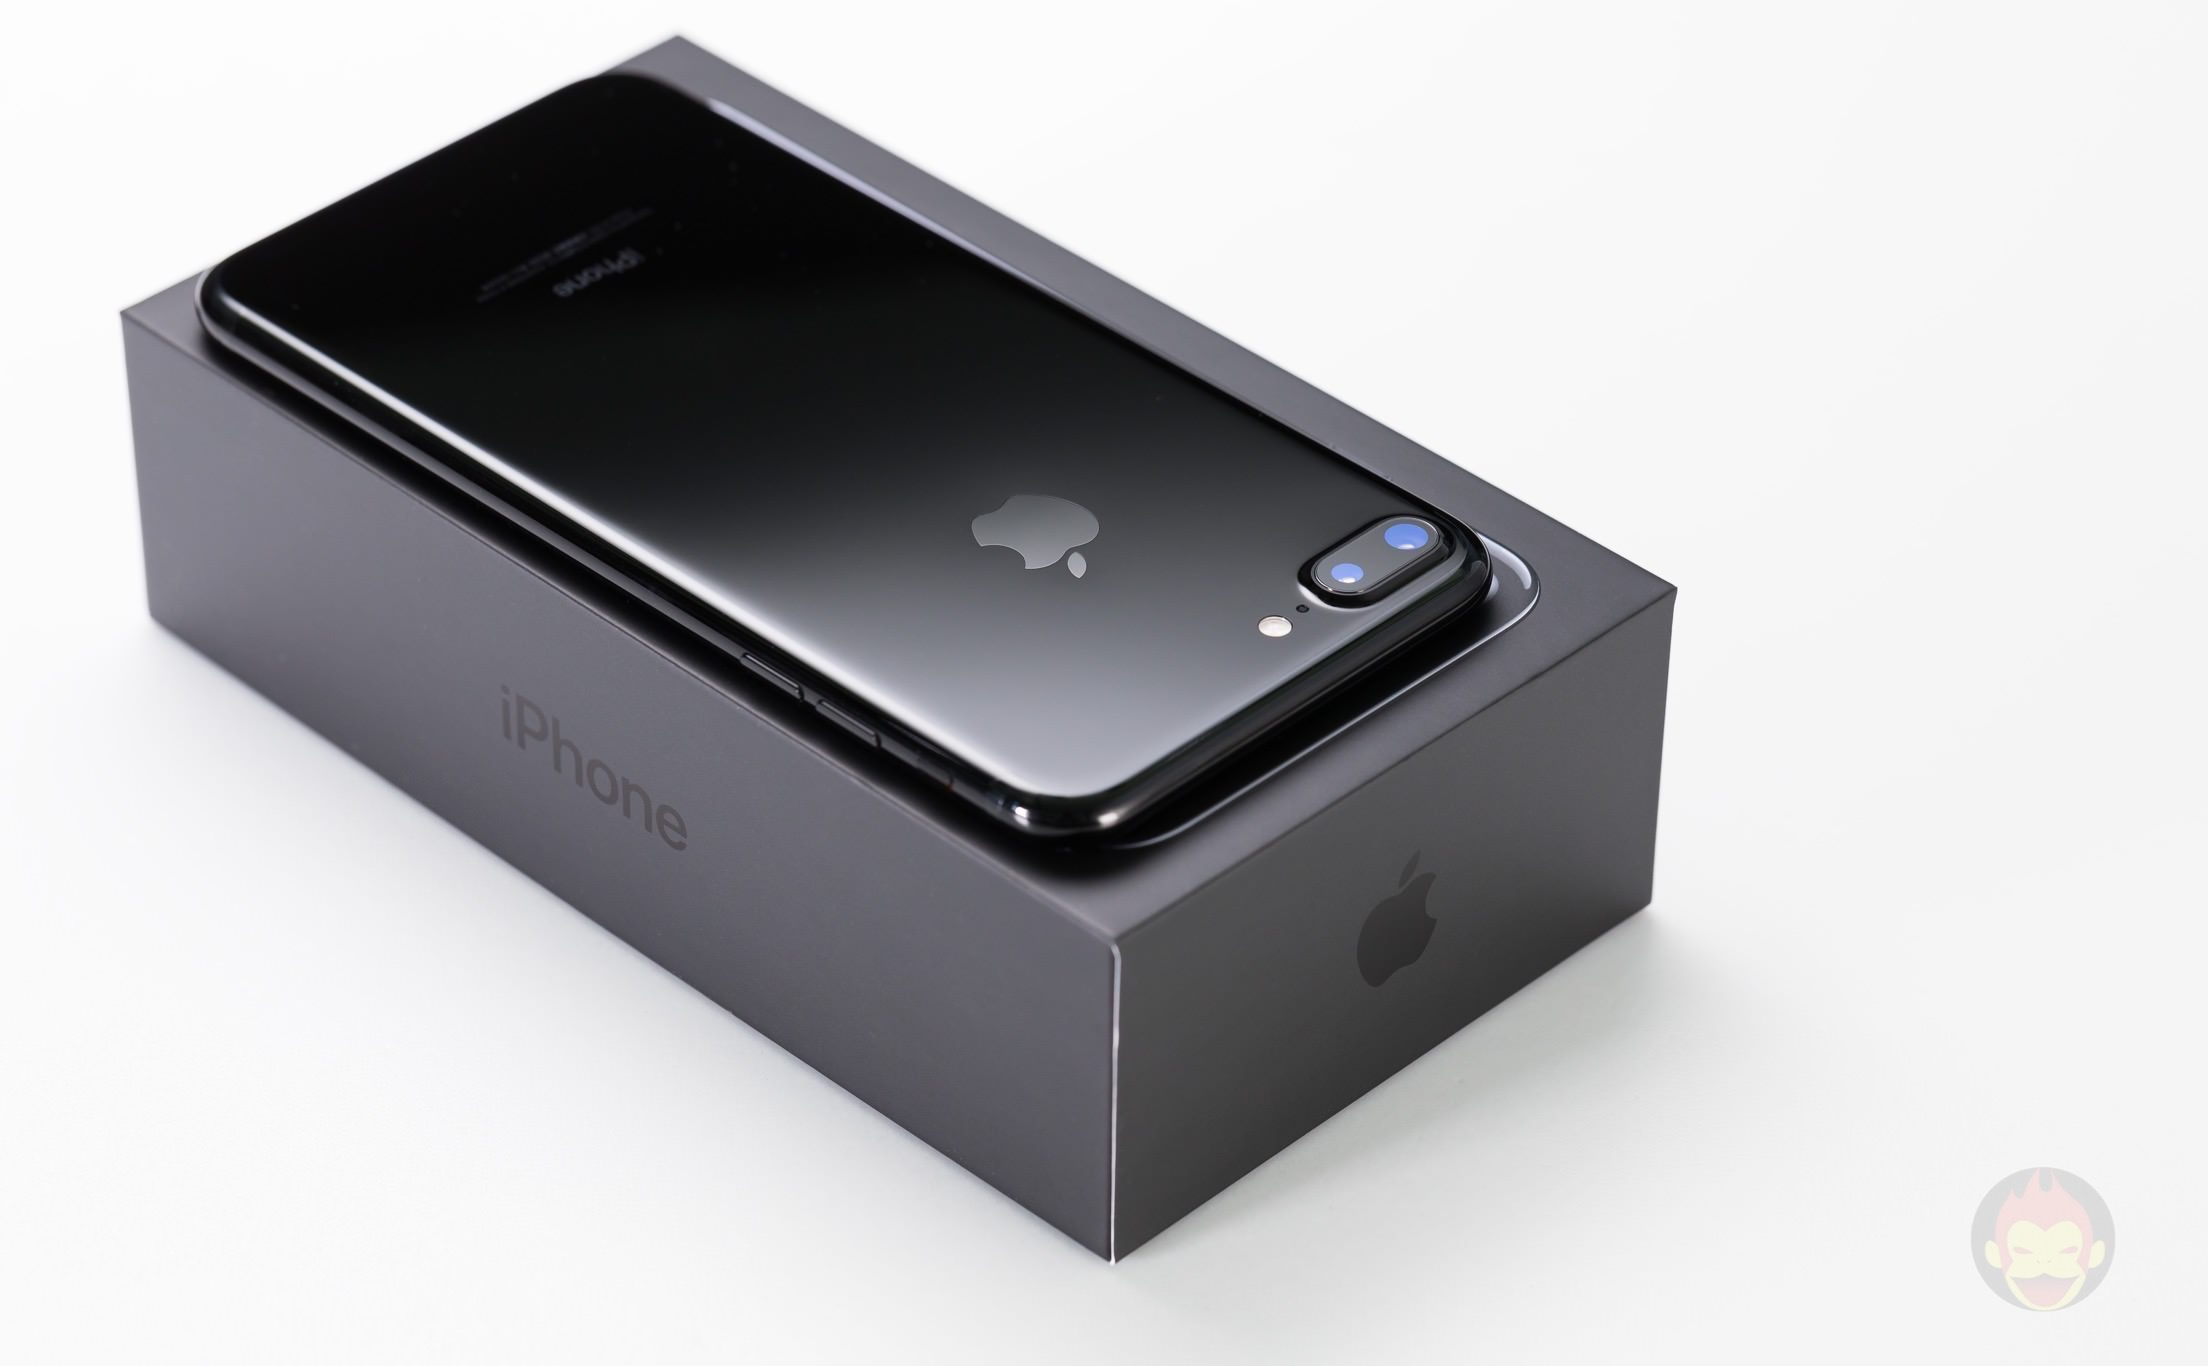 iPhone-7-Plus-Jet-Black-Design-review-01.jpg